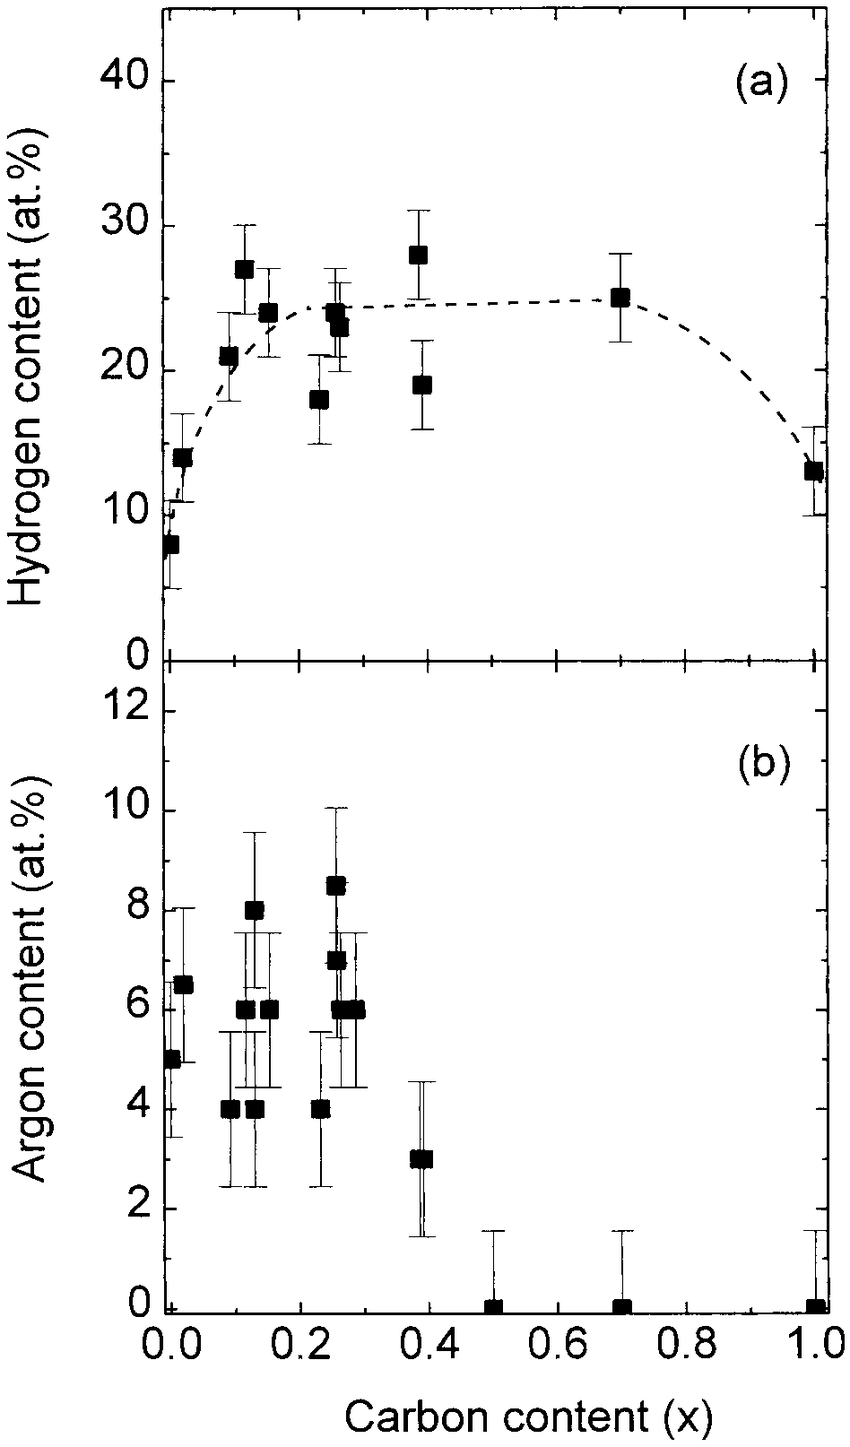 hight resolution of a hydrogen concentration as a function of carbon content obtained by a 2 2 mev he